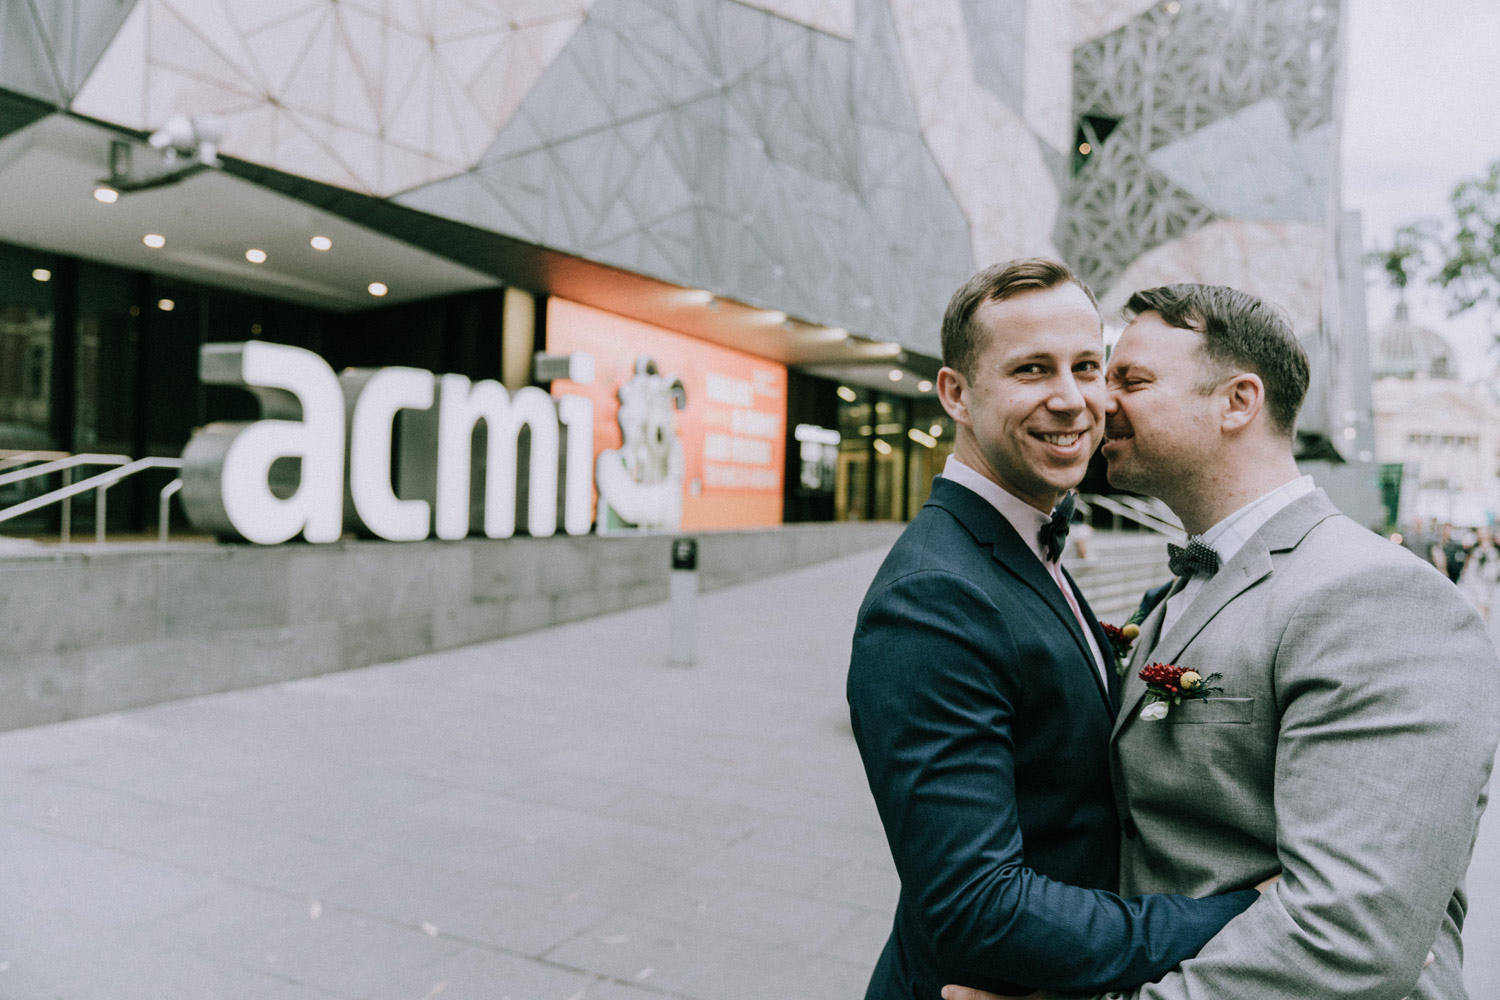 gay boyfriends kissing each other outside ACMI Melbourne for wedding photo